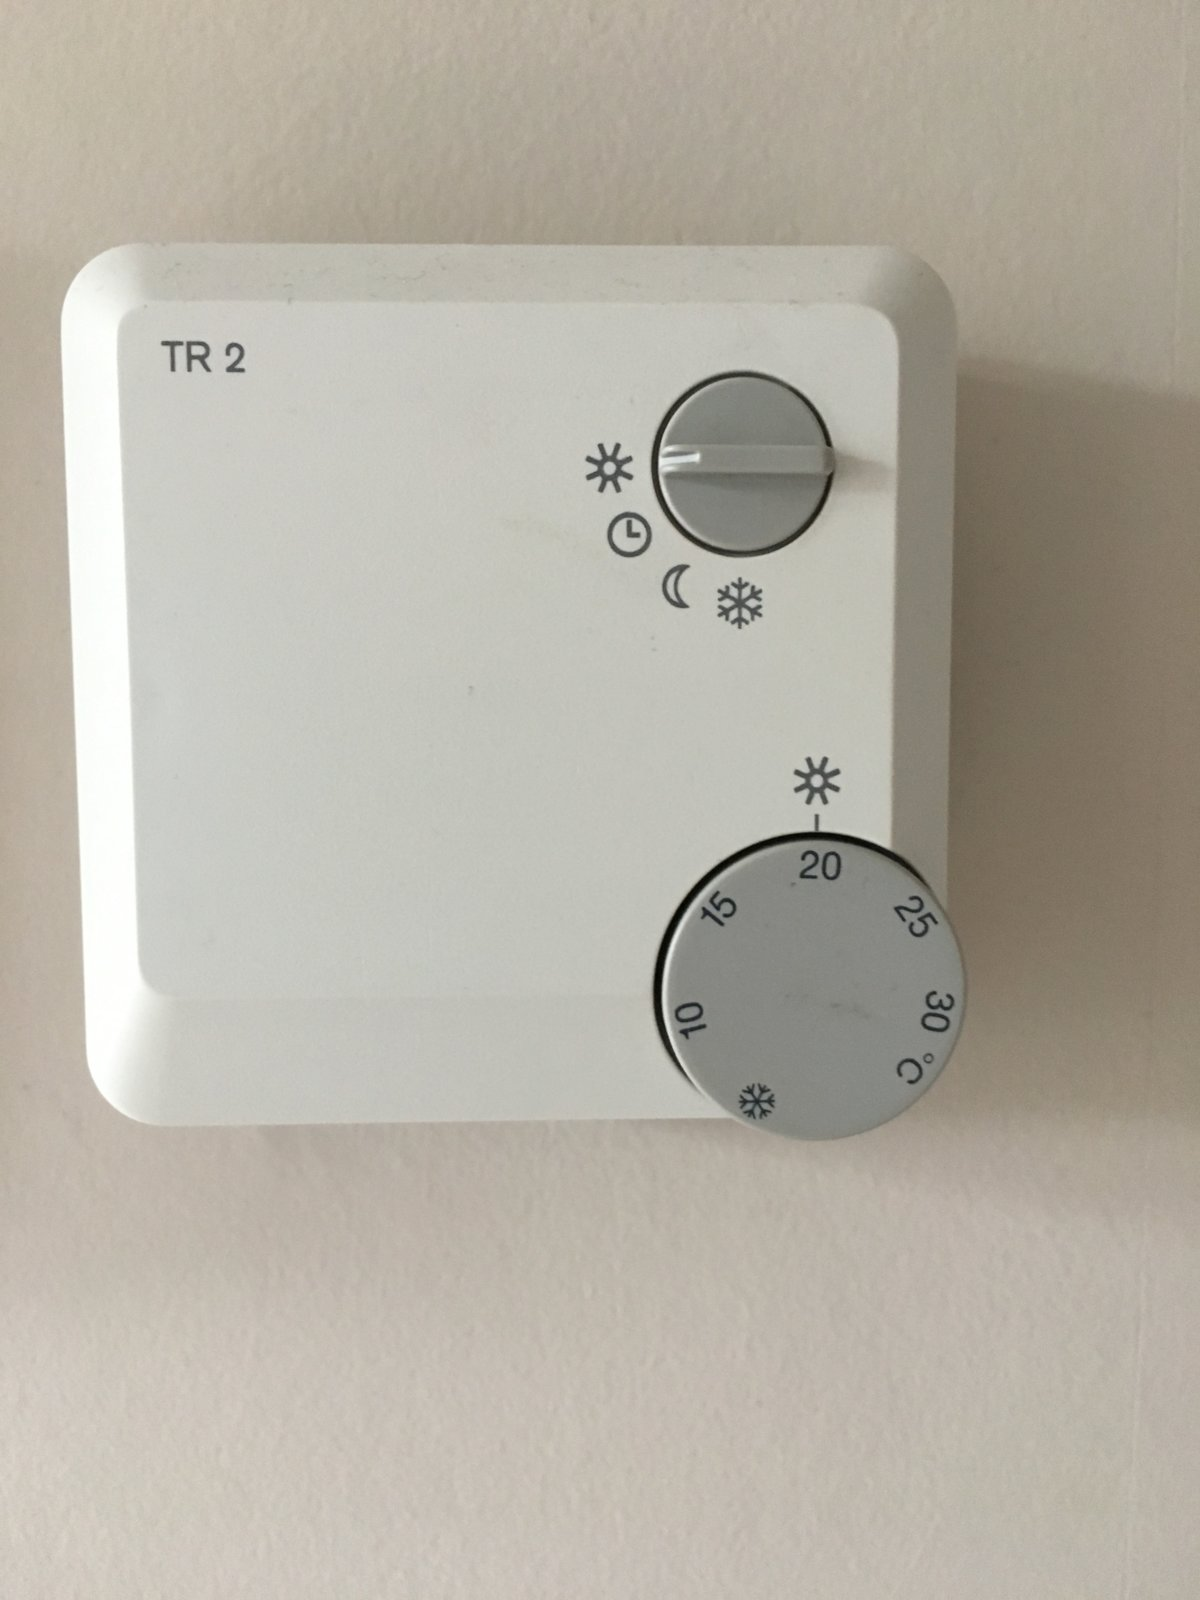 Enjoyable Tr2 Reading Wrong Temperature Any Fixes Diynot Forums Wiring Digital Resources Dadeaprontobusorg